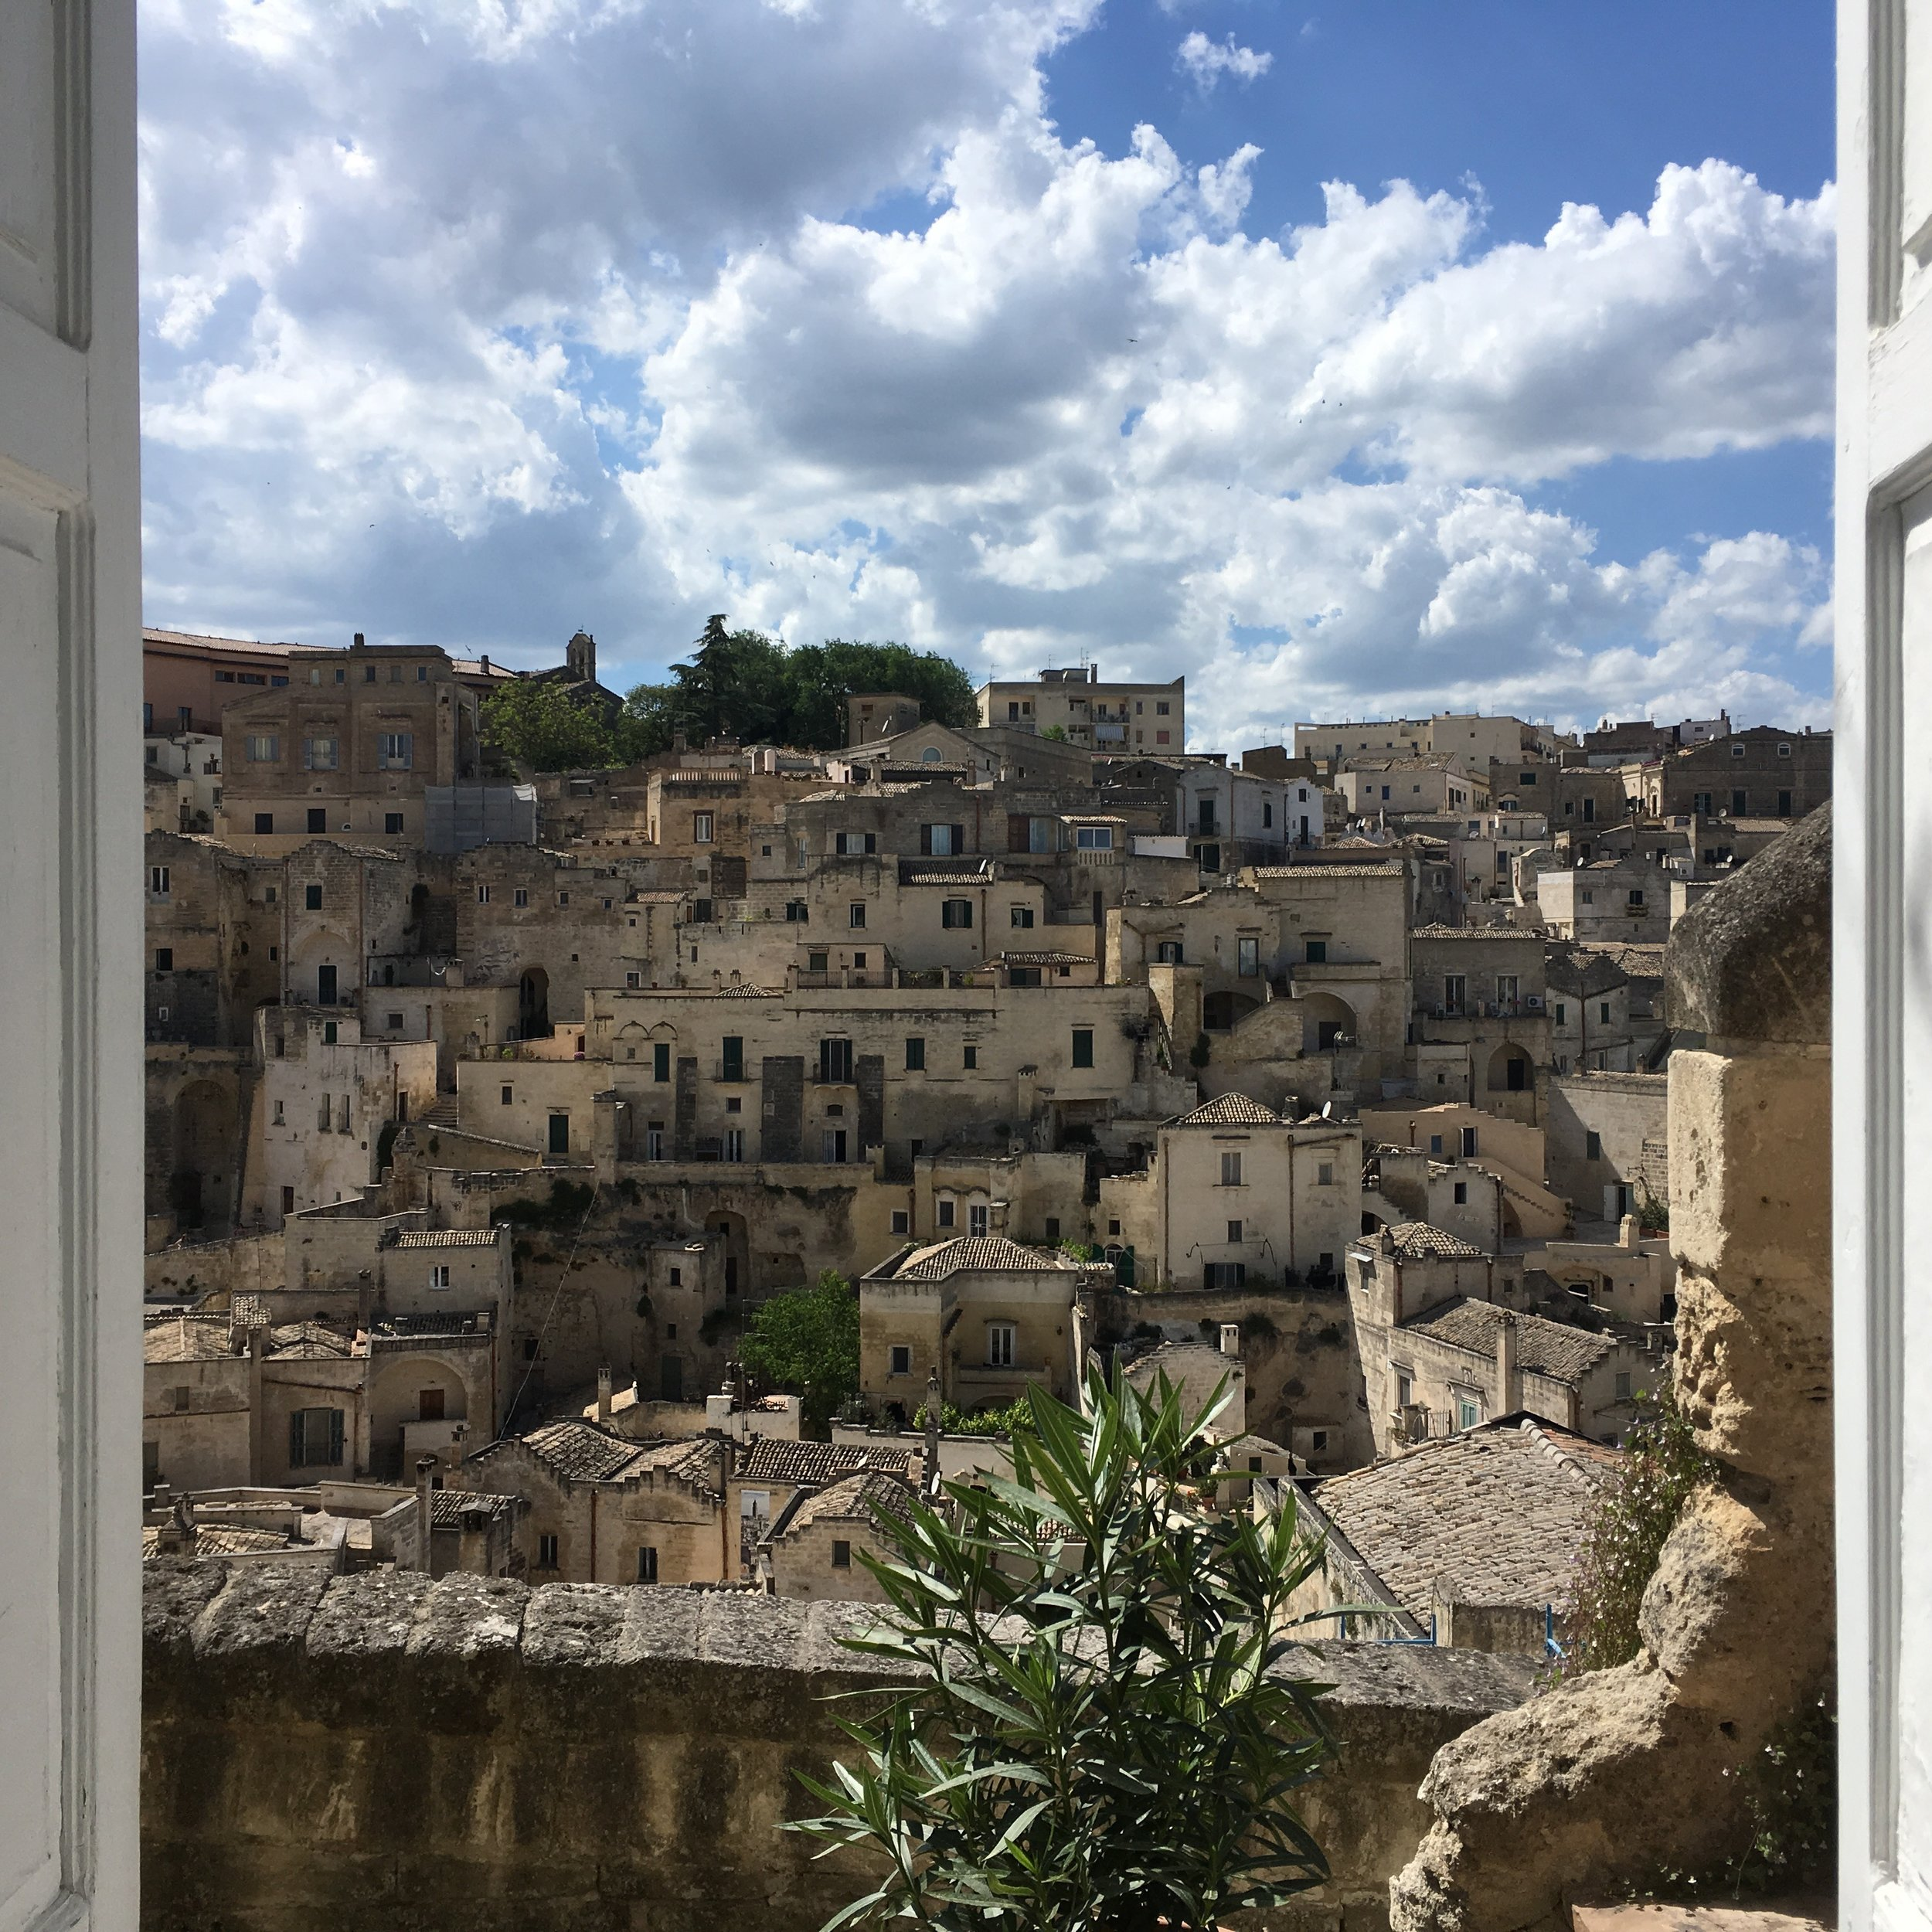 Another stunning view of Matera